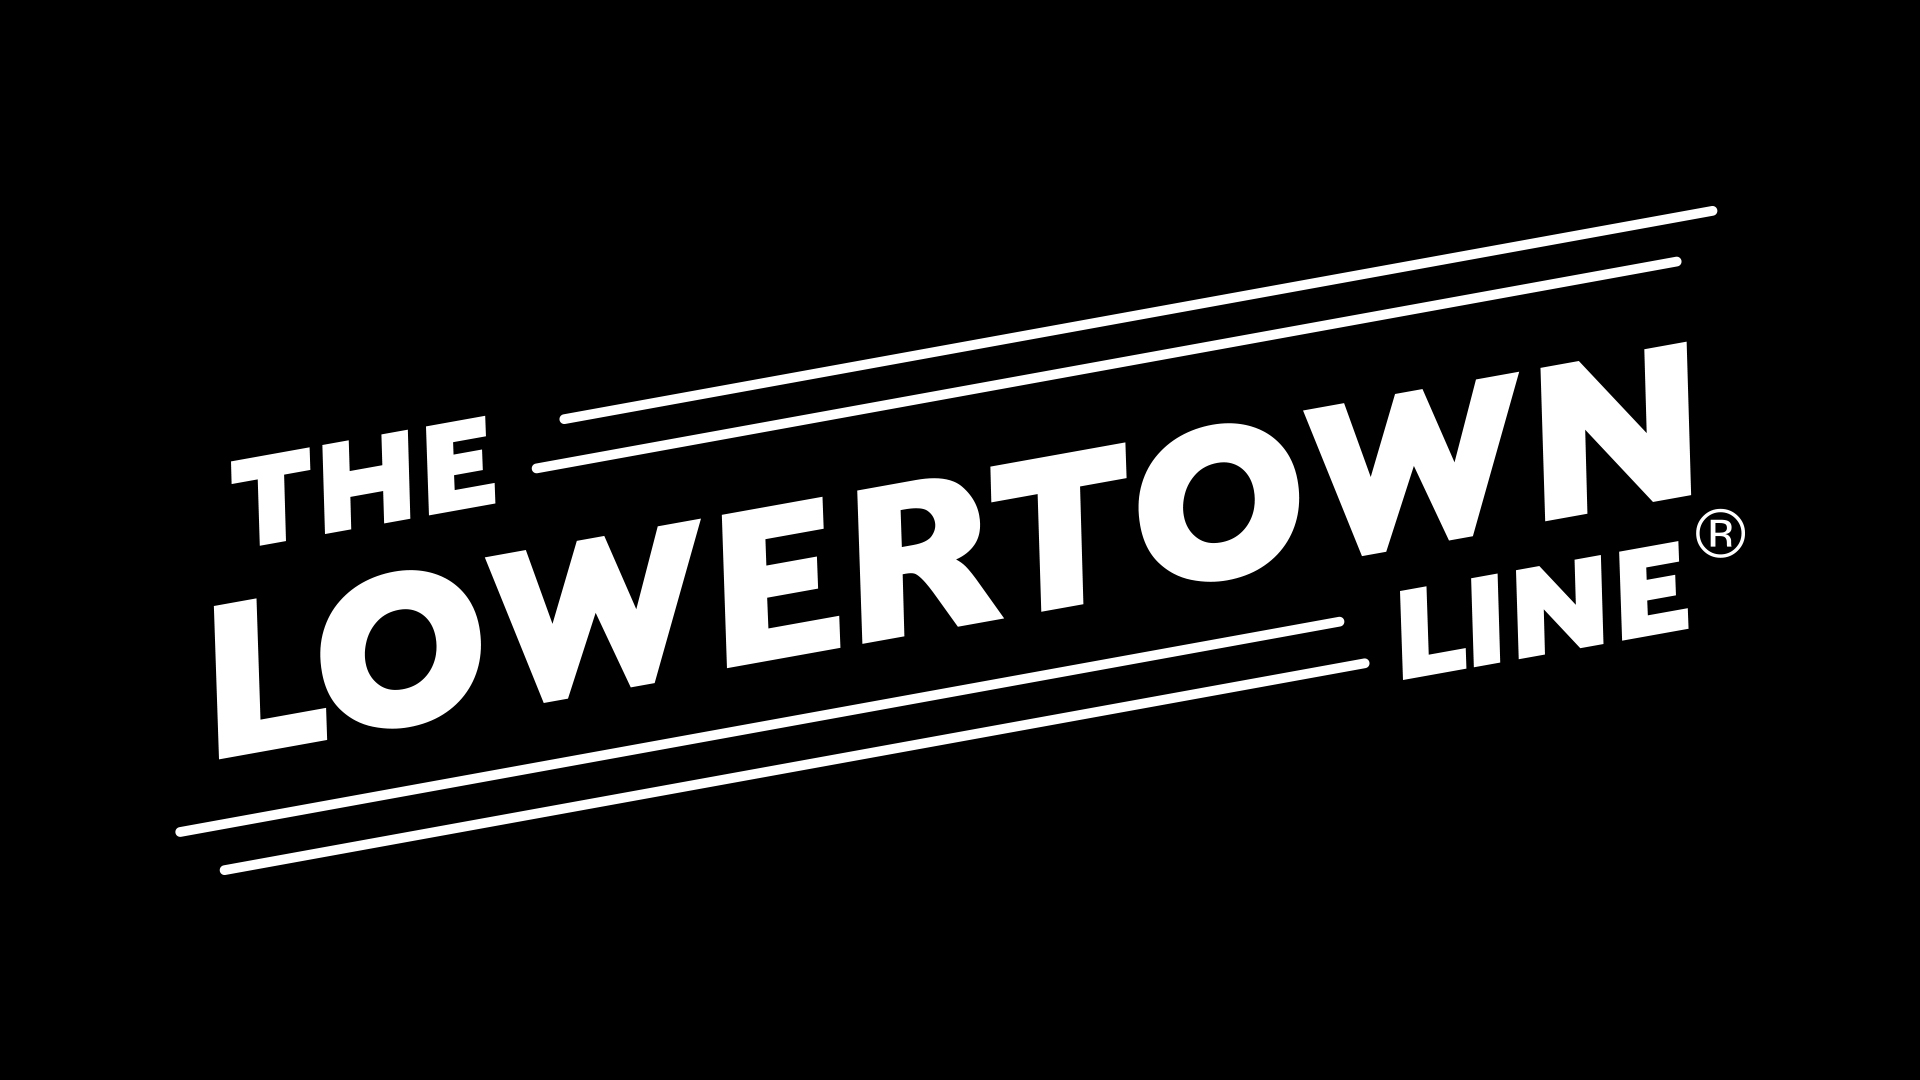 The Lowertown Line | TPT